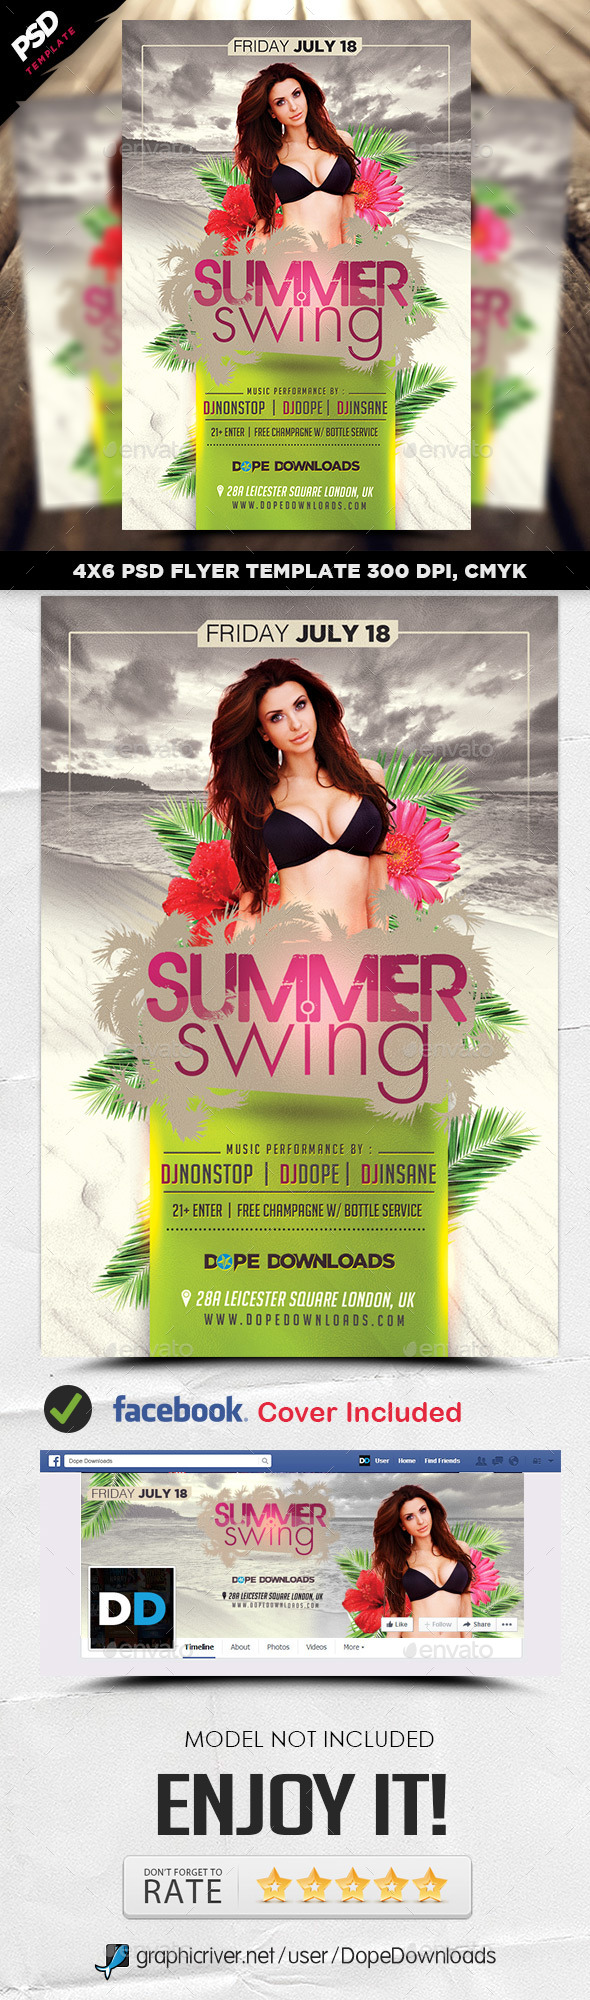 Summer Swing Flyer Template - Clubs & Parties Events